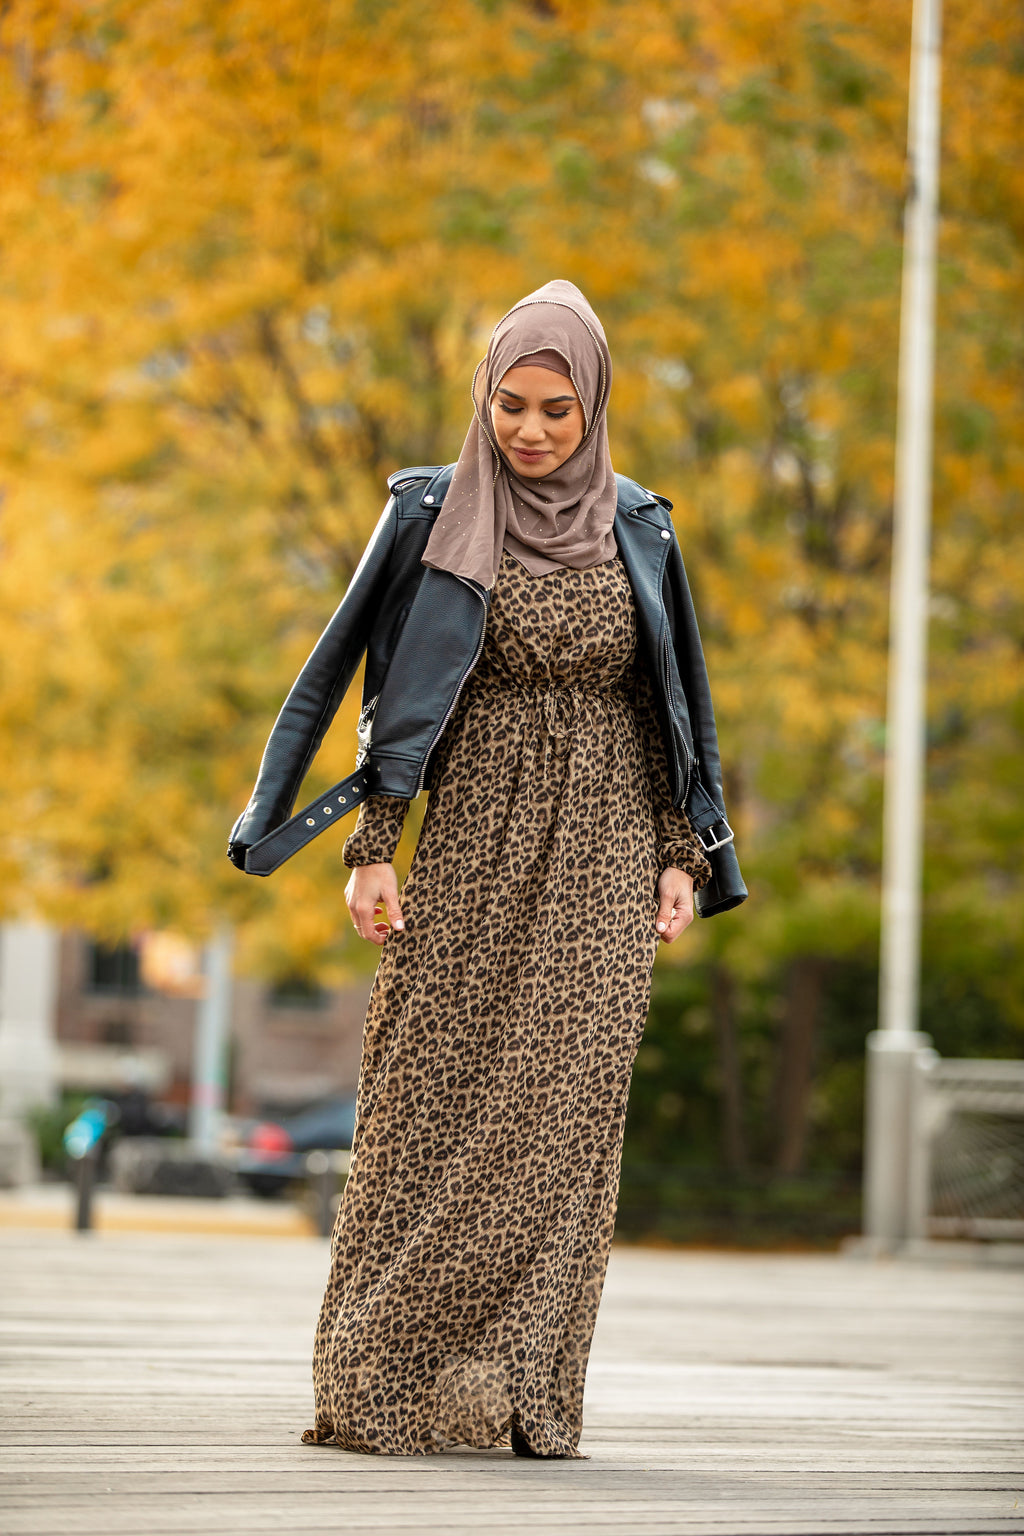 Striped Non-Sheer Maxi Cardigan-PREORDER - Abaya, Hijabs, Jilbabs, on sale now at UrbanModesty.com